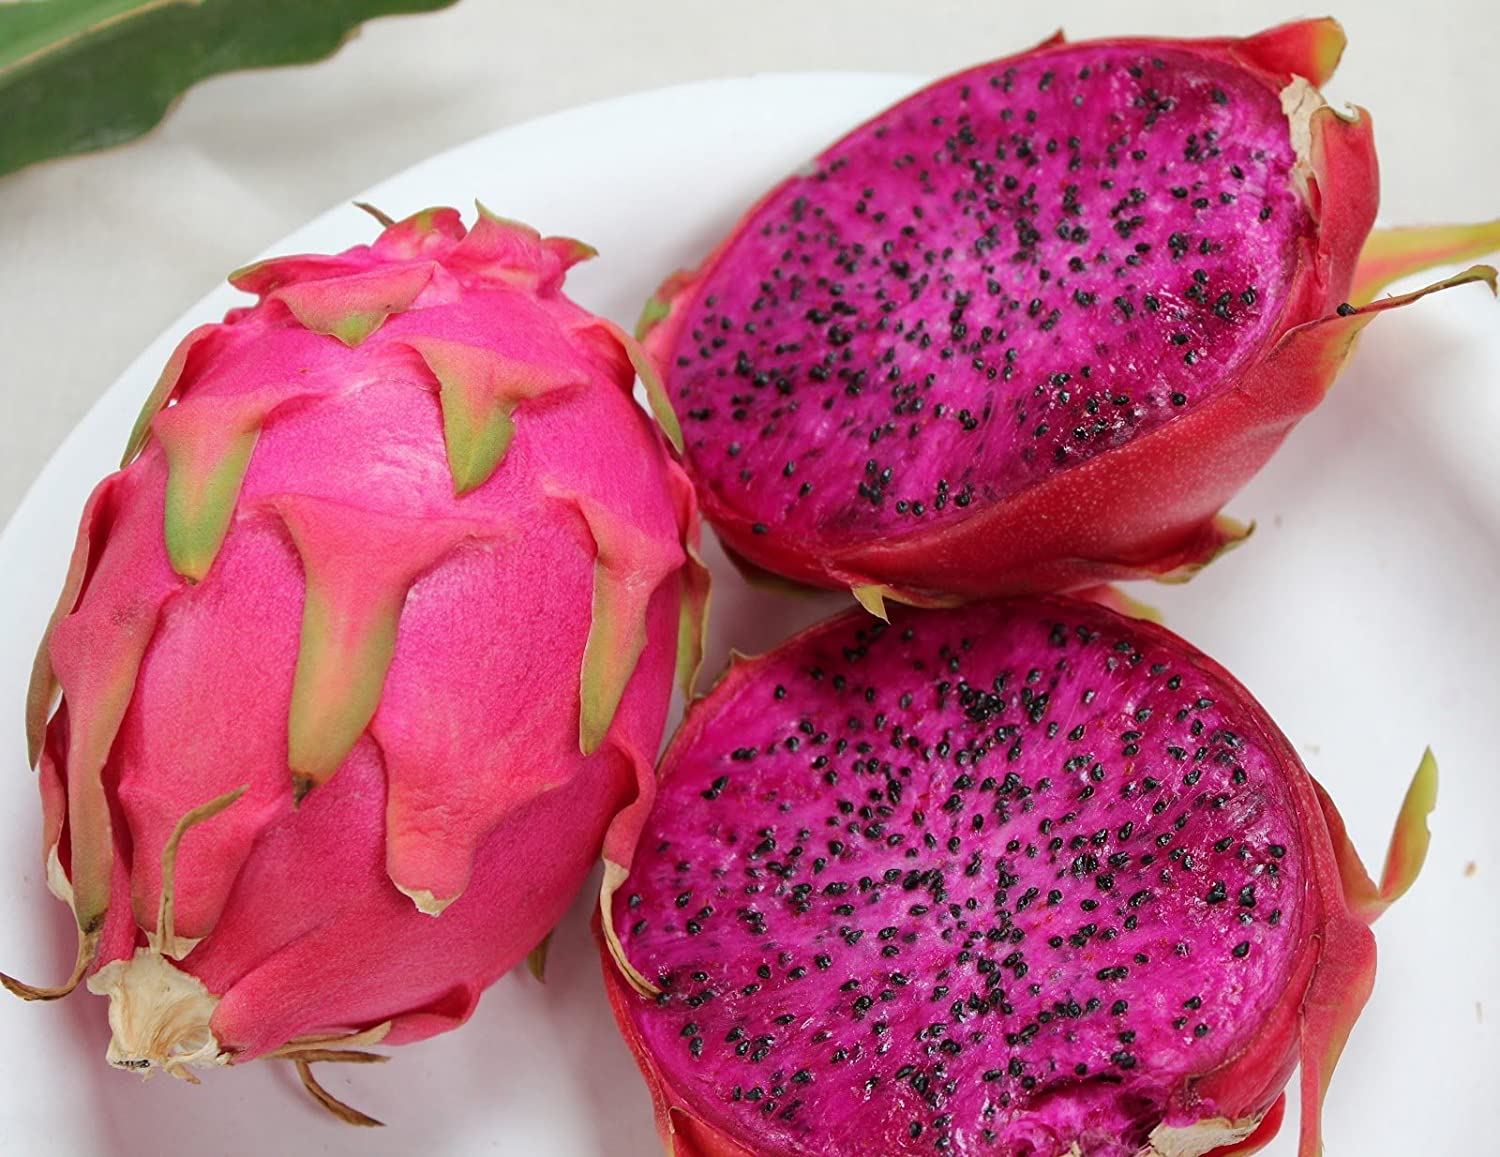 Dragon fruit comes in three colors white pink and red or magenta white - Amazon Com 20 Purple Dragon Fruit Pitaya Pitahaya Strawberry Pear Hylocereus Undatus Cactus Seeds By Seedville Fruit Plants Patio Lawn Garden